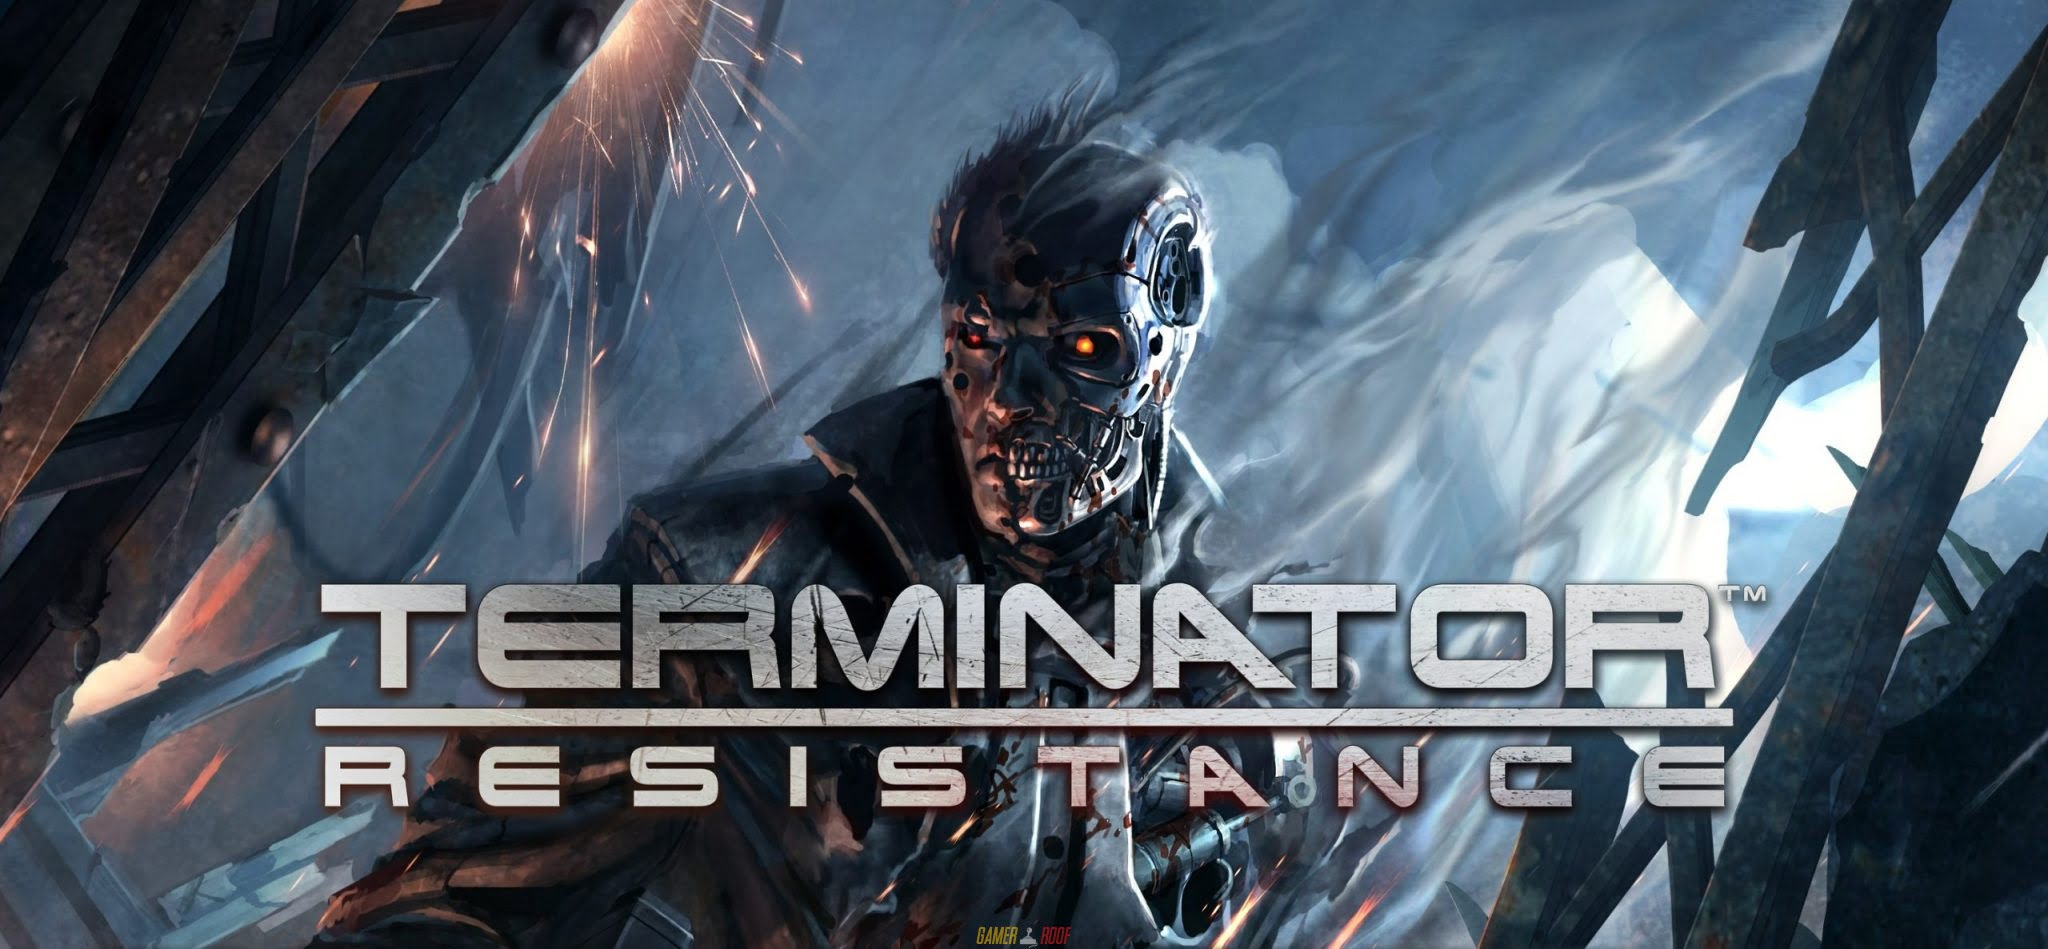 Terminator Resistance Nintendo Switch Version Full Game Free Download